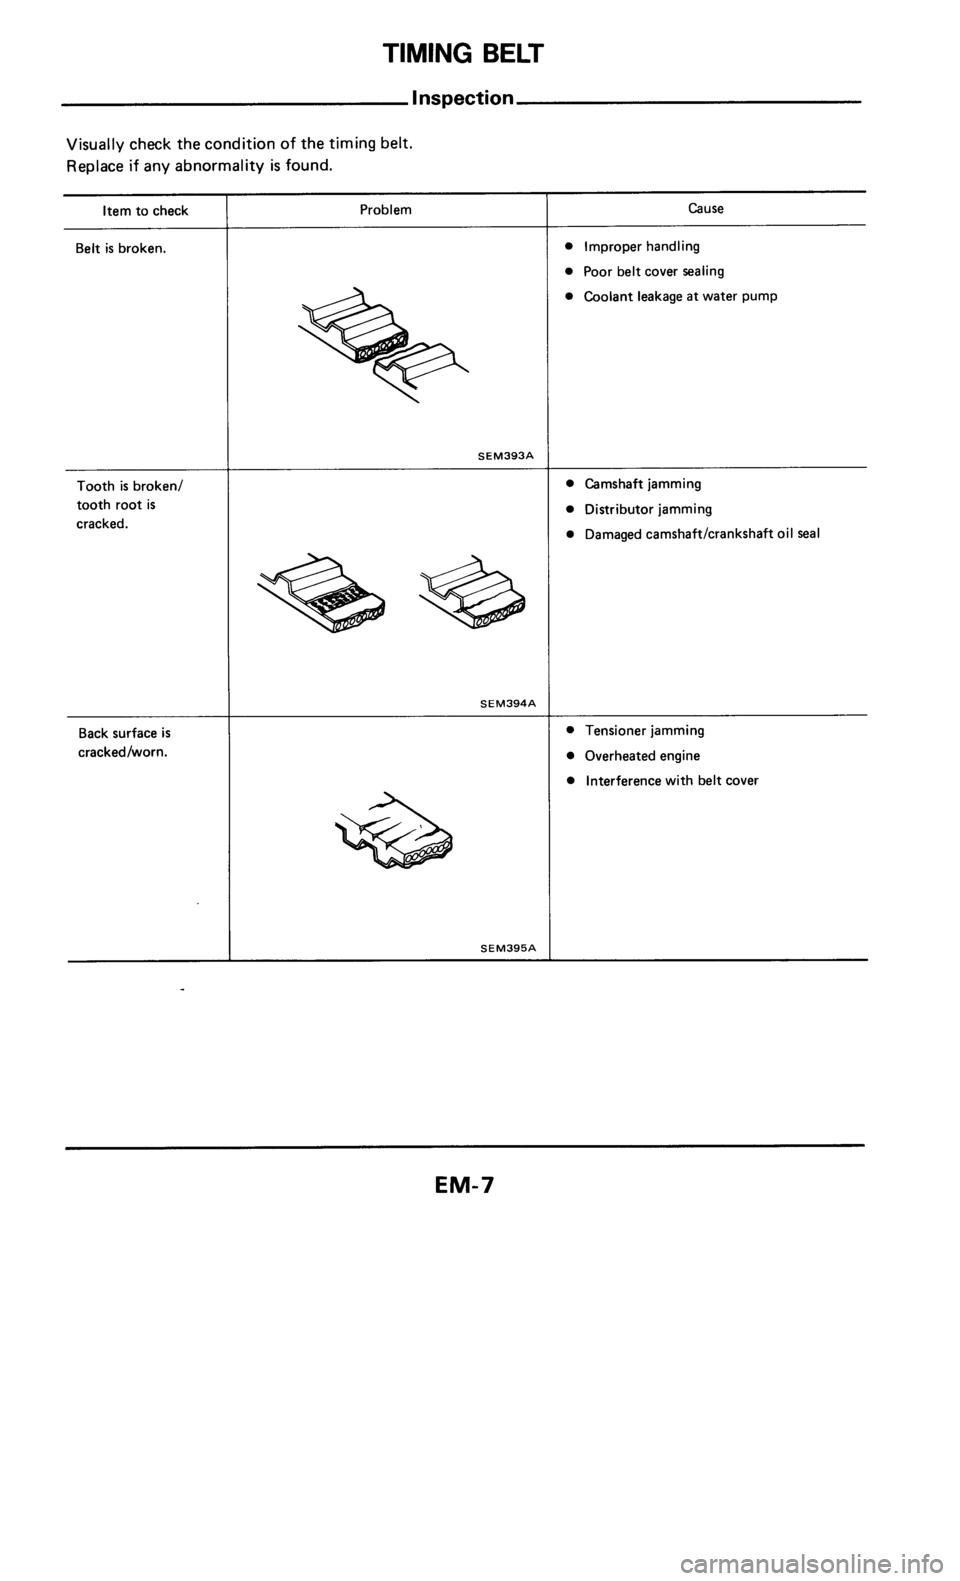 NISSAN 300ZX 1984 Z31 Engine Mechanical Workshop Manual, Page 7